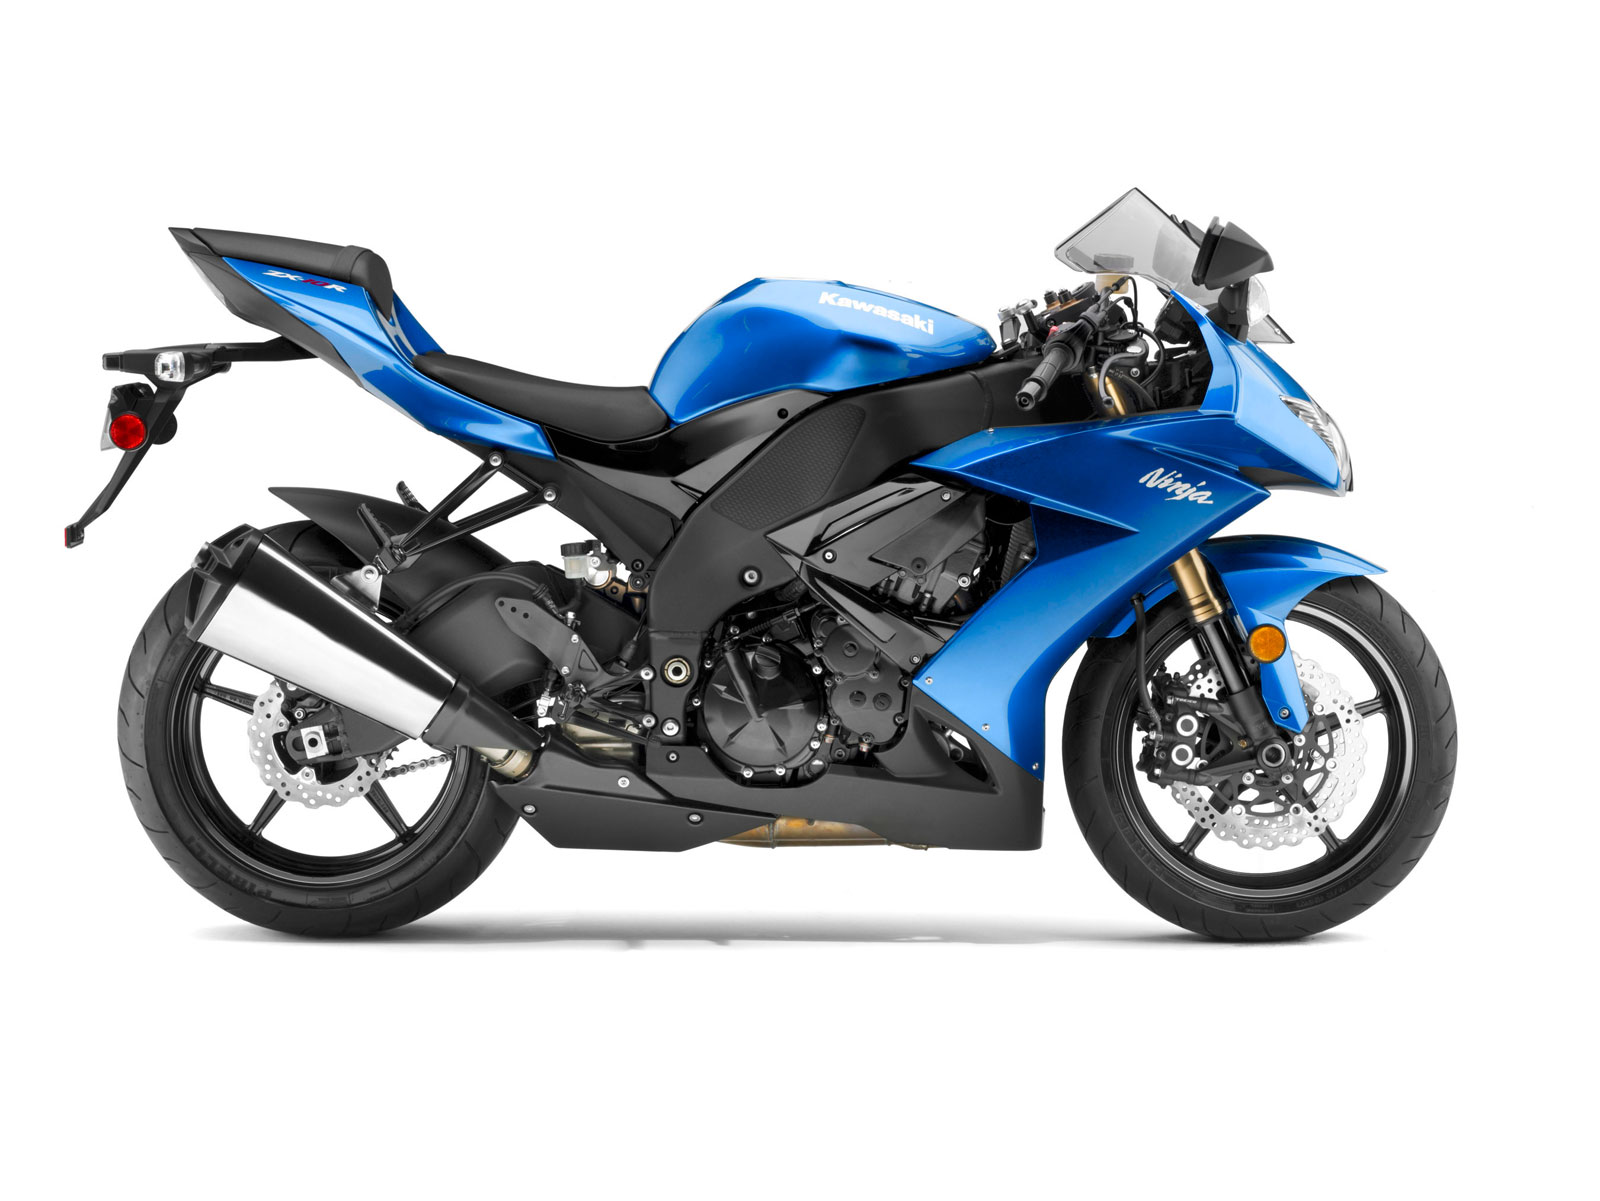 kawasaki ninja zx 10r photos and comments. Black Bedroom Furniture Sets. Home Design Ideas